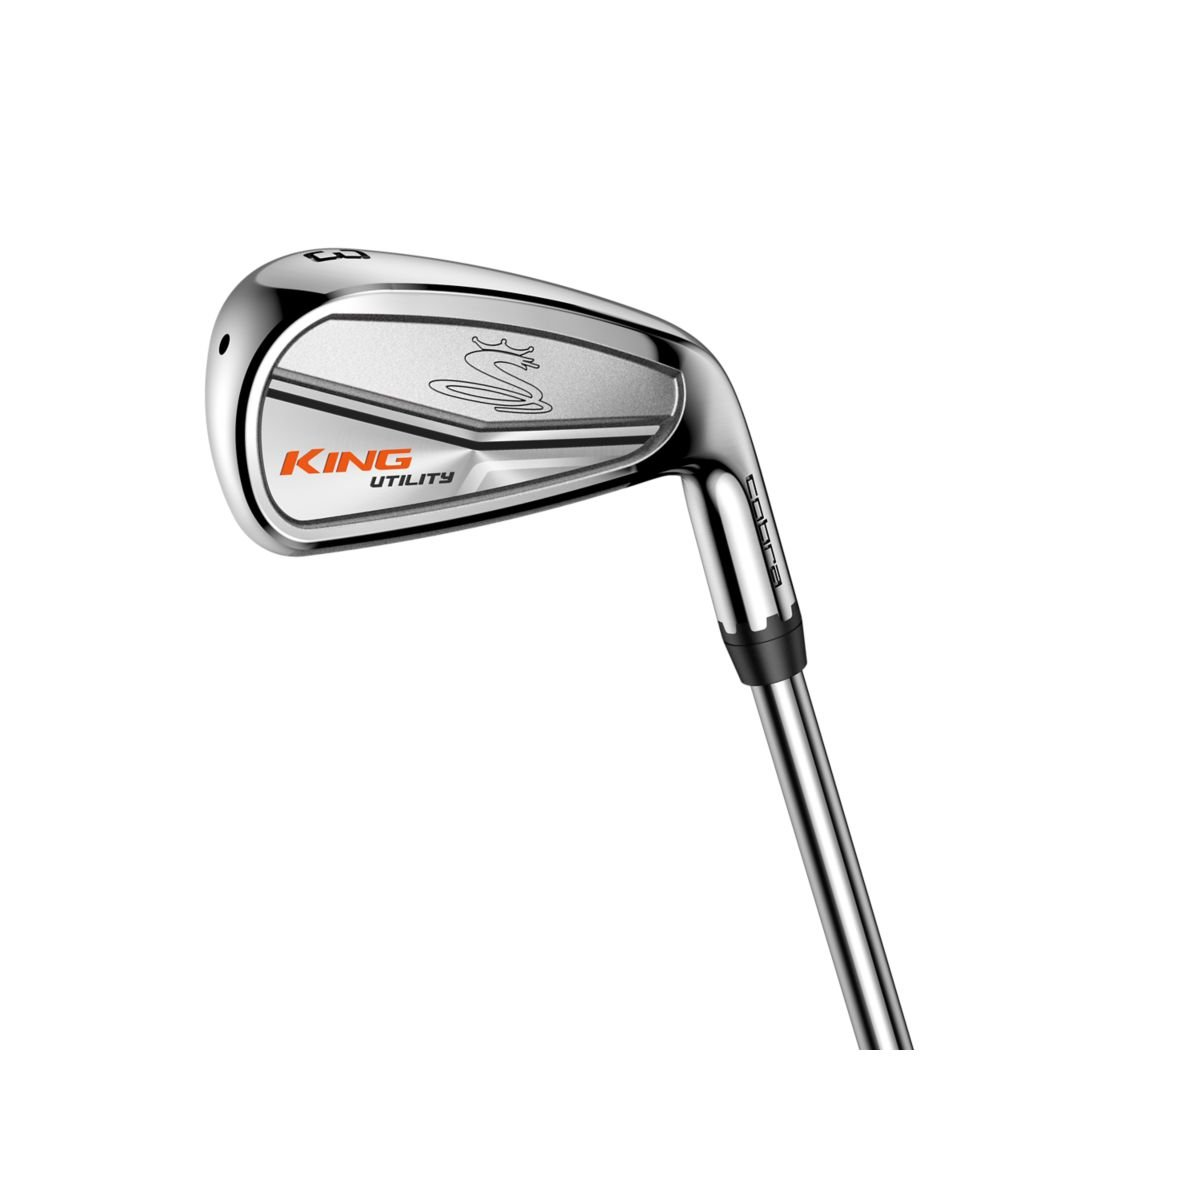 Cobra Golf 2017 Men's Utility Iron